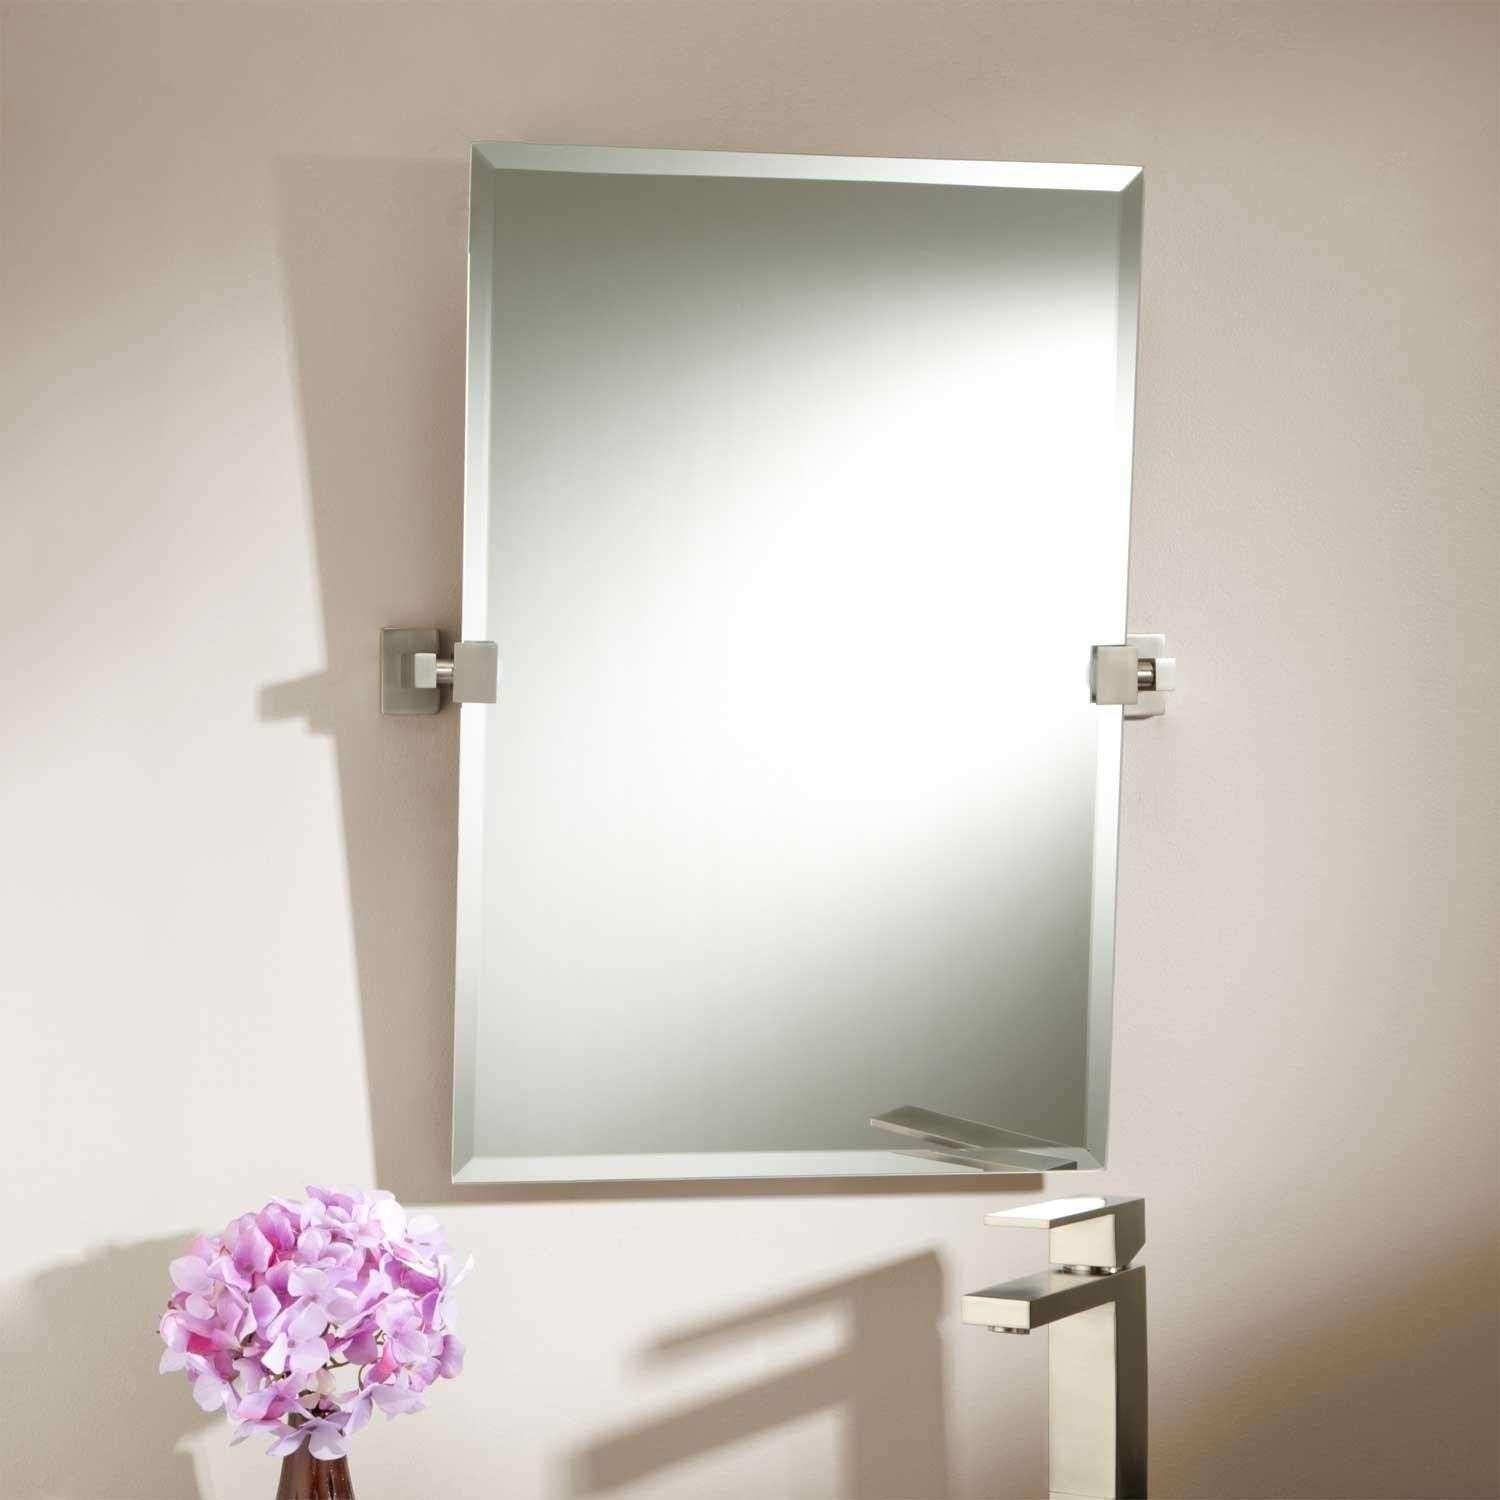 Bedroom Wall Mirrors Decorative Best Decorative Wall Mirrors